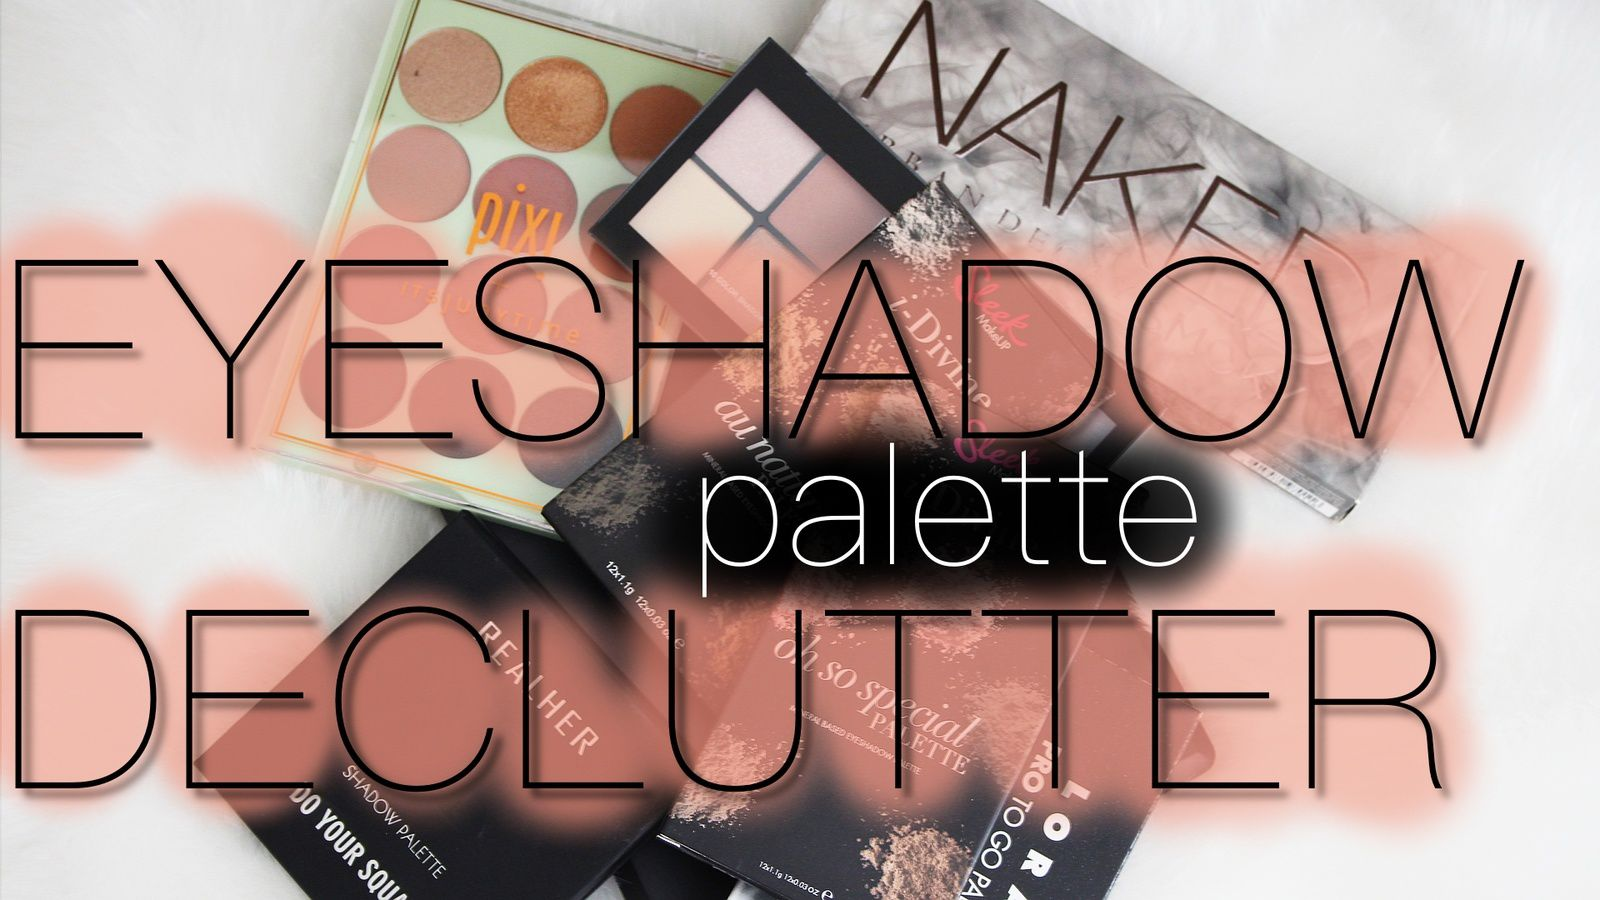 MORE Eyeshadow Palette DECLUTTER!